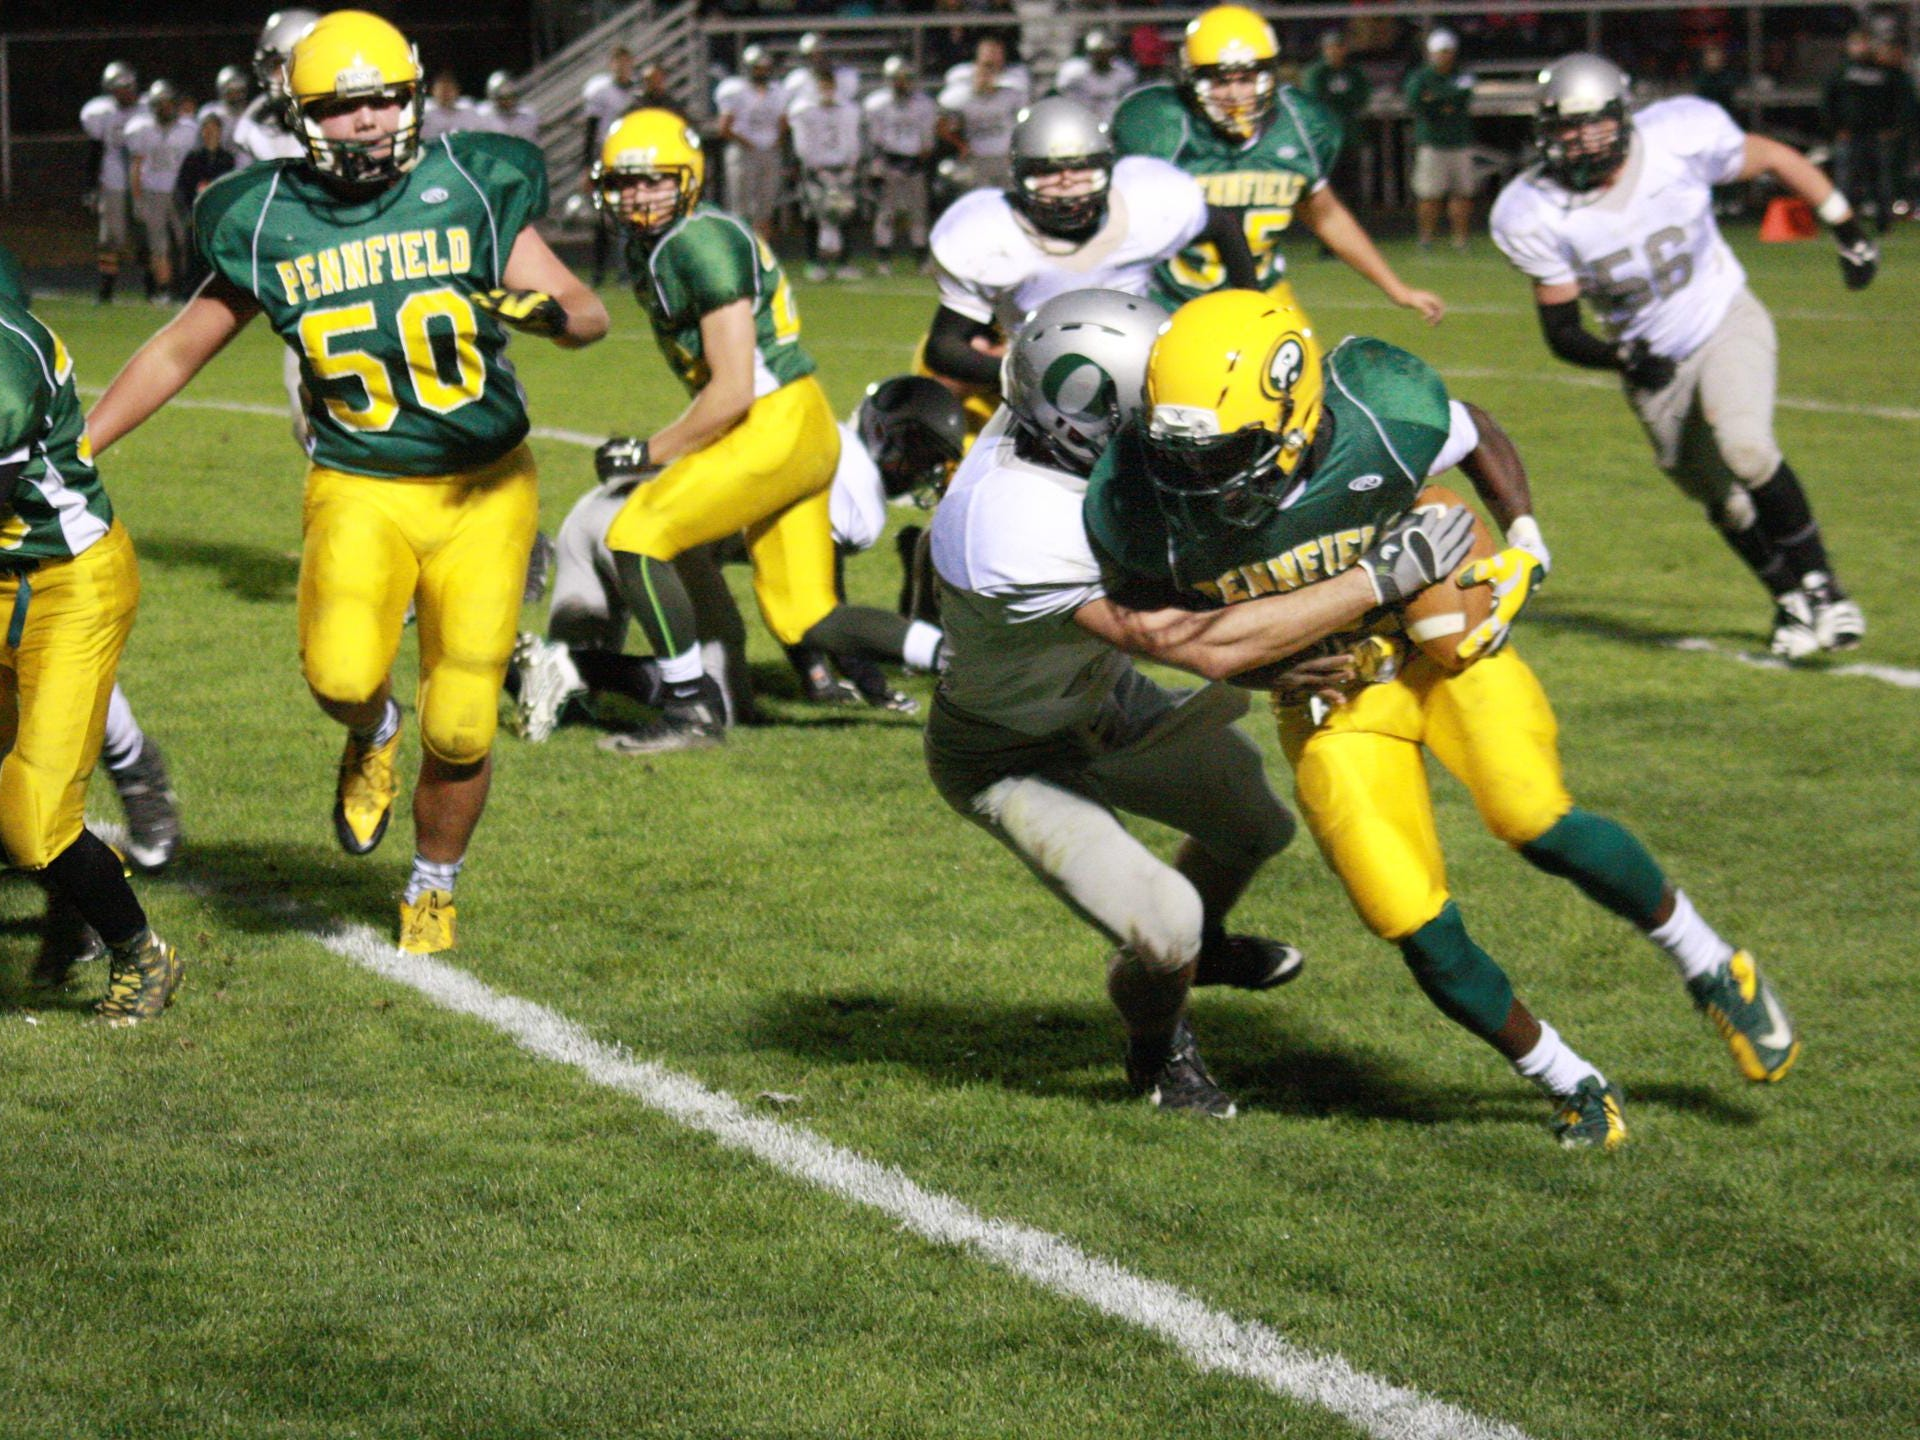 Olivet has made the playoffs every season since 2008 and is one of the more consistent programs in the area.